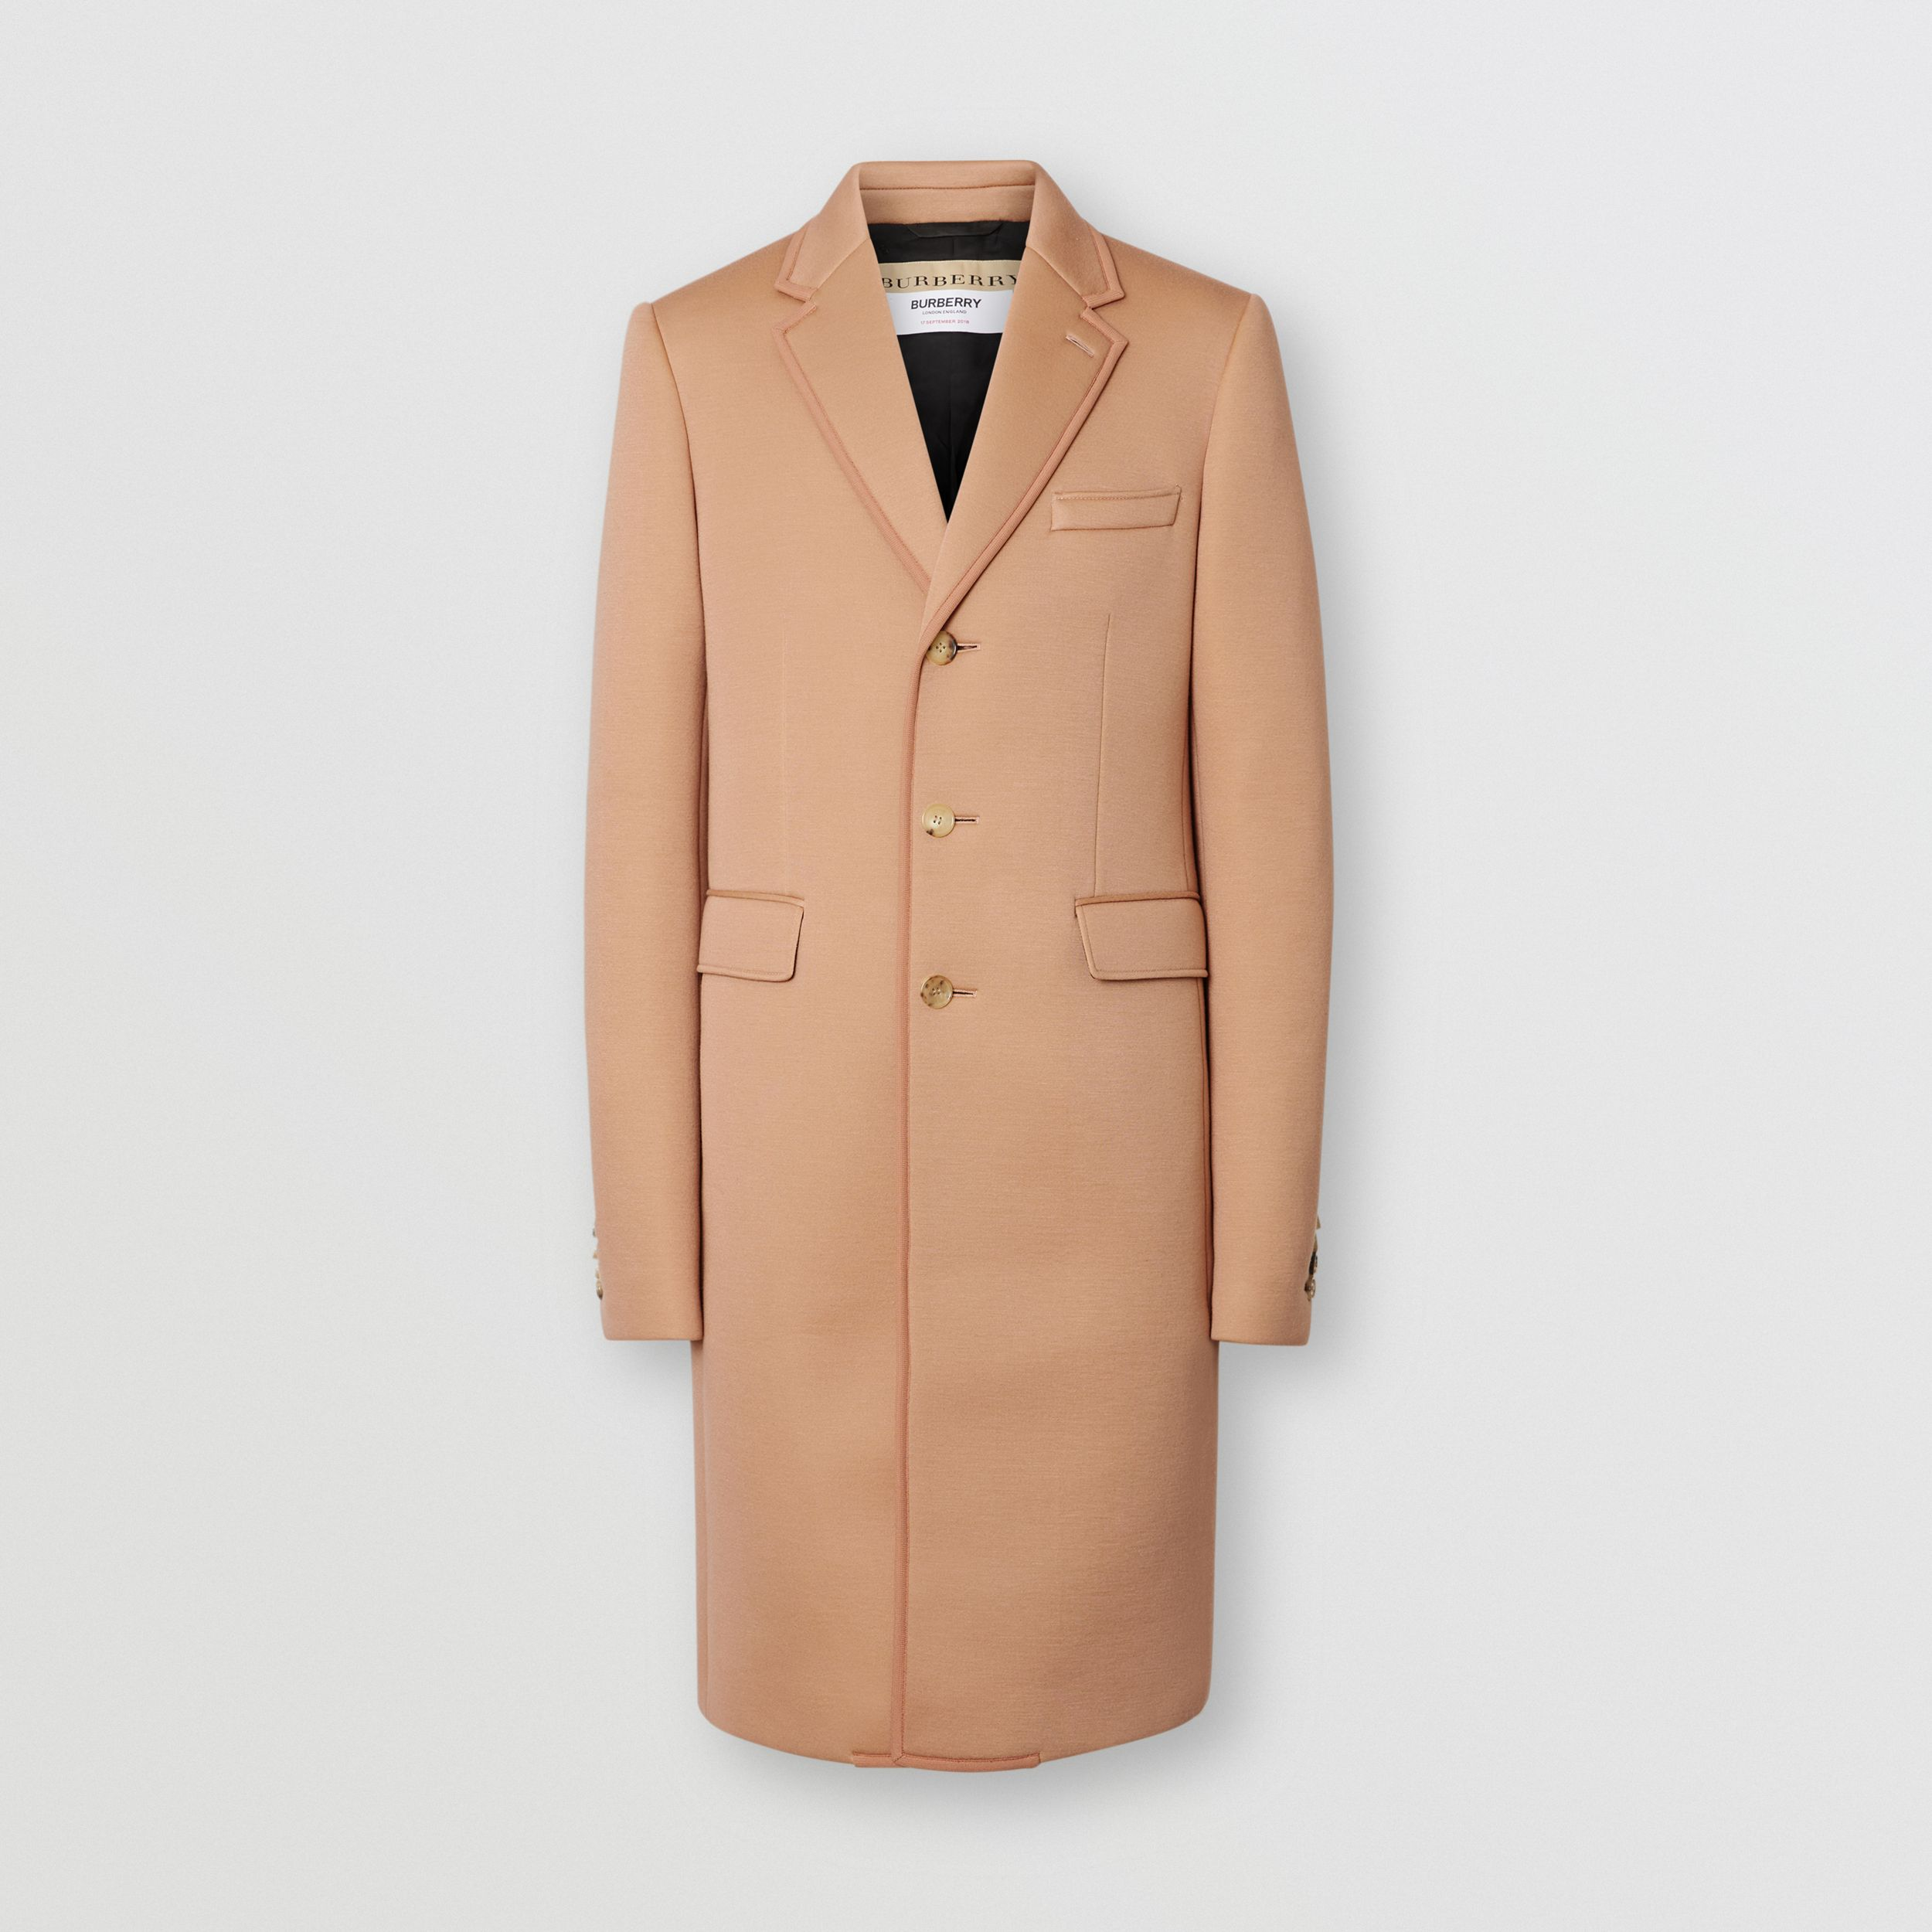 Neoprene Tailored Coat in Beige | Burberry - 4